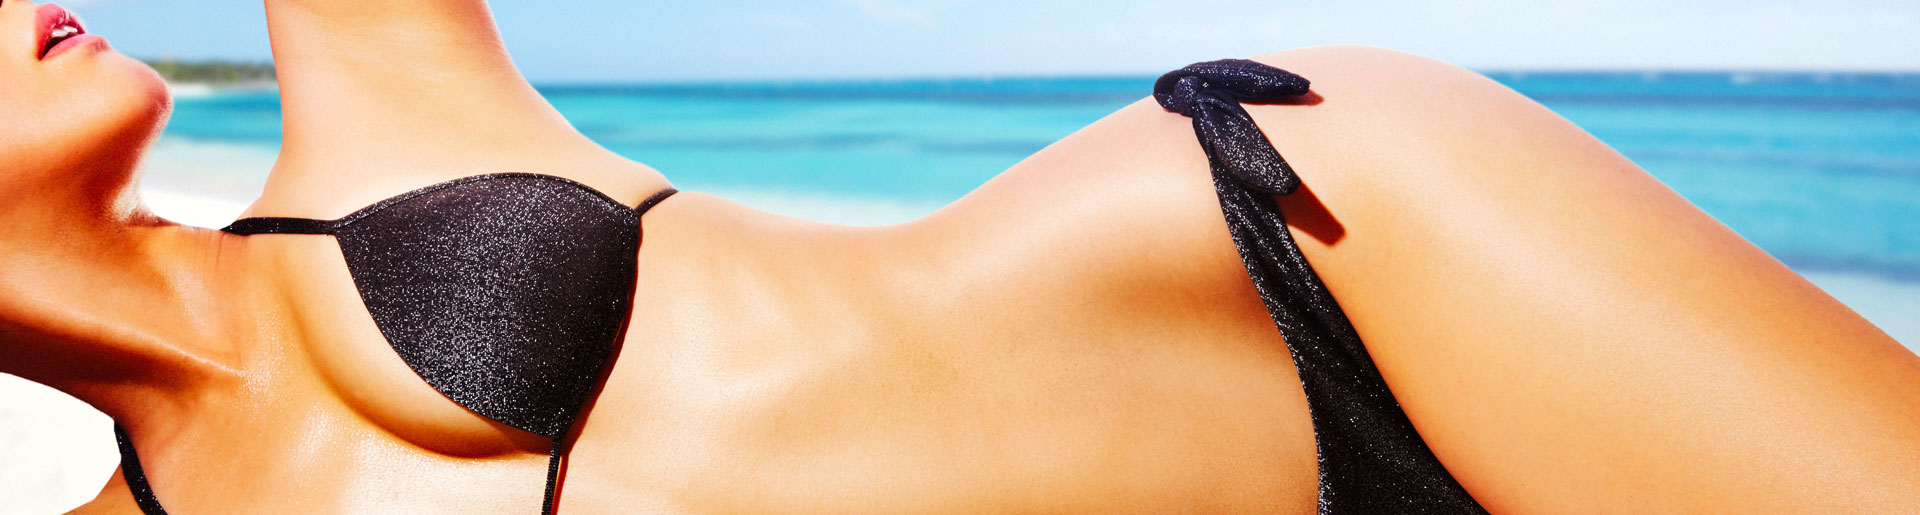 laser-hair-removal-black-bikini-summer-lake-norman-aesthetics-concierge-med-spa-laser-center-mooresville-nc-28117-laser-hair-treatment-2